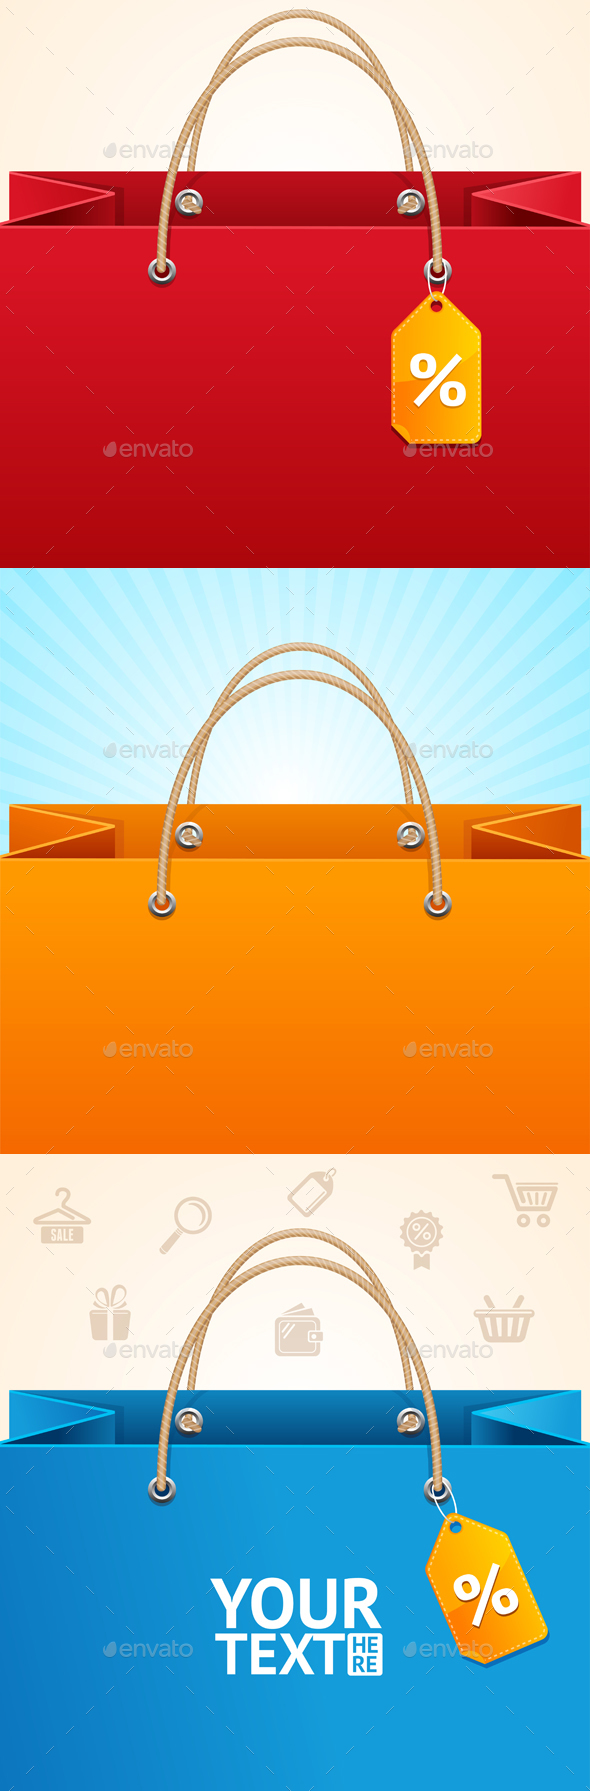 Paper Bag Background Sale - Retail Commercial / Shopping